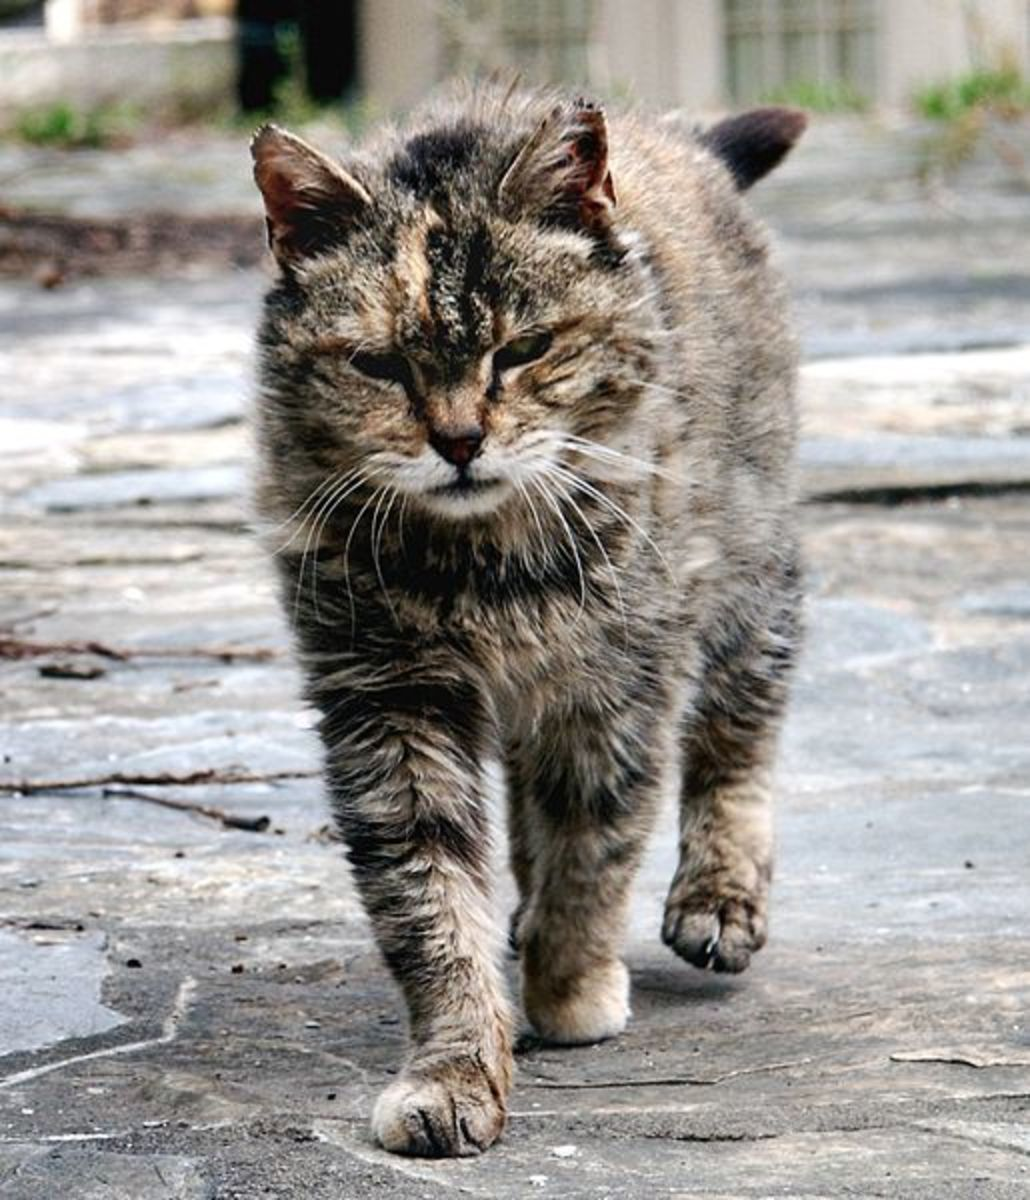 Feral cats can be tamed easier when temporary caging is employed as a tool for re-domestication.